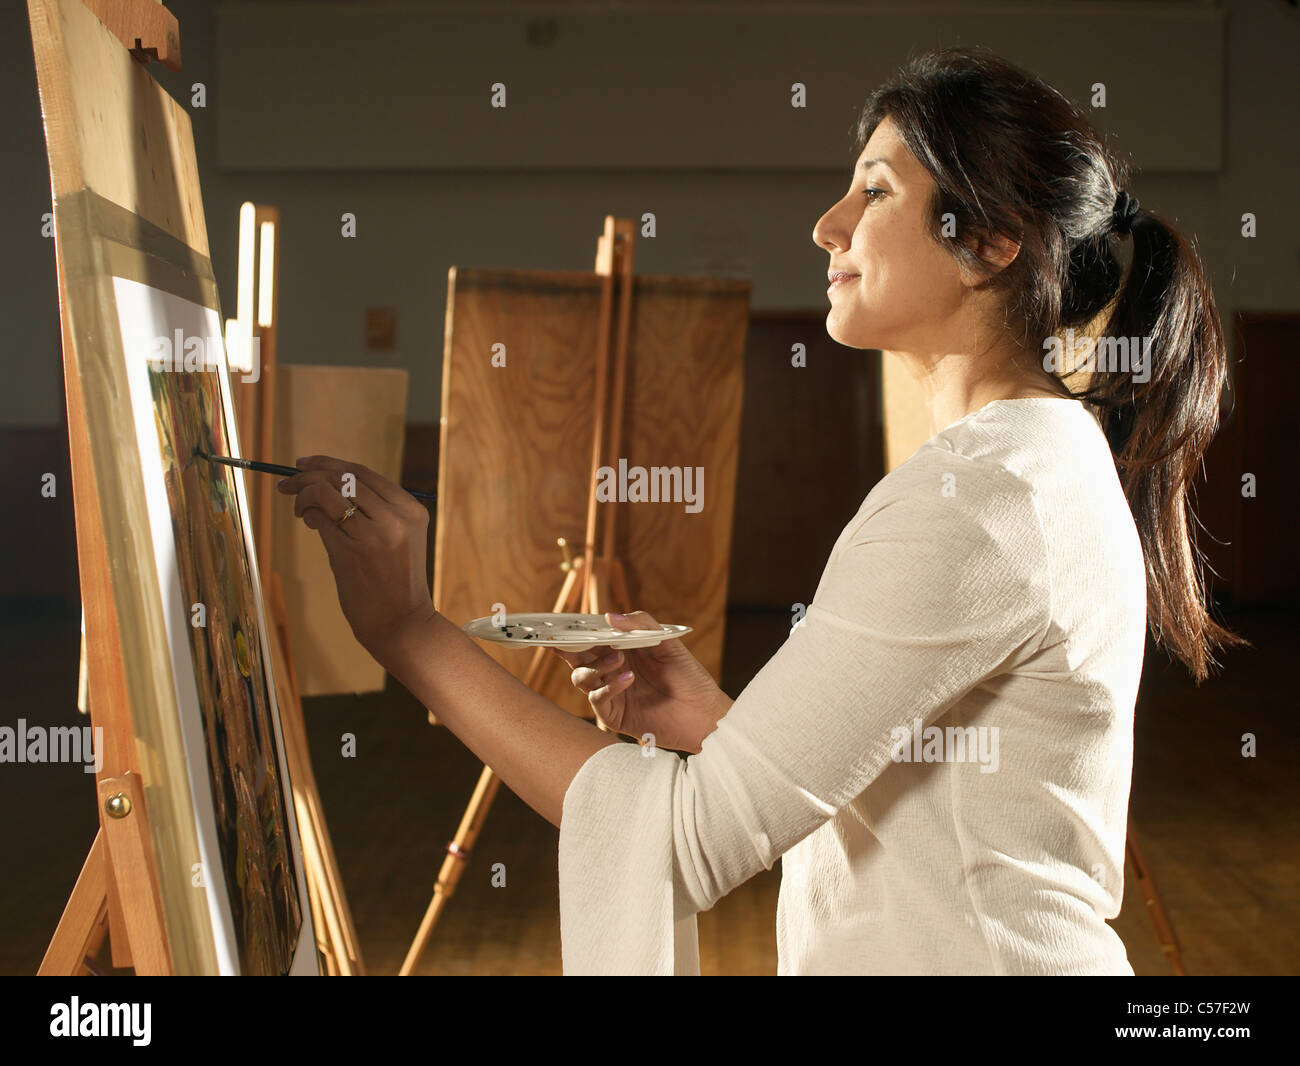 Artist painting in studio - Stock Image